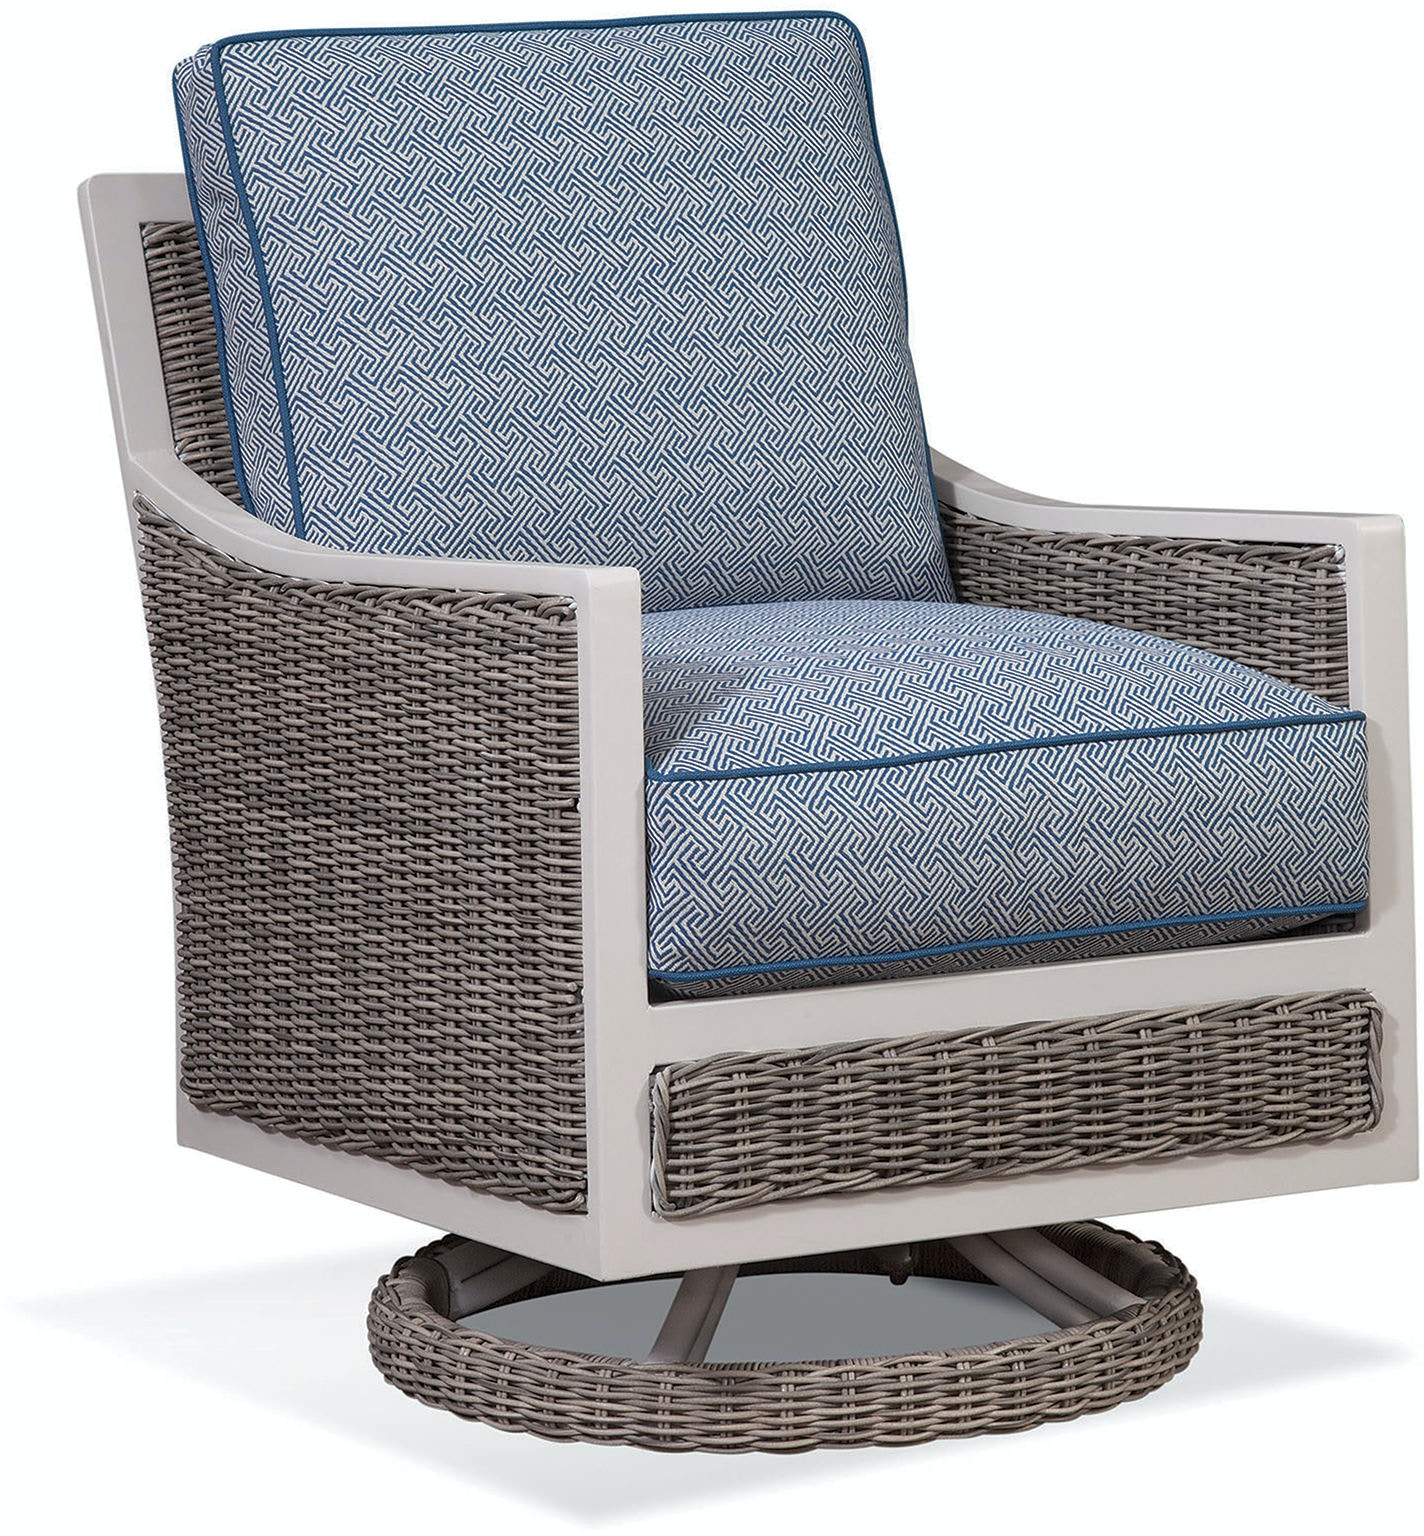 Outdoor Swivel Chair 418-005